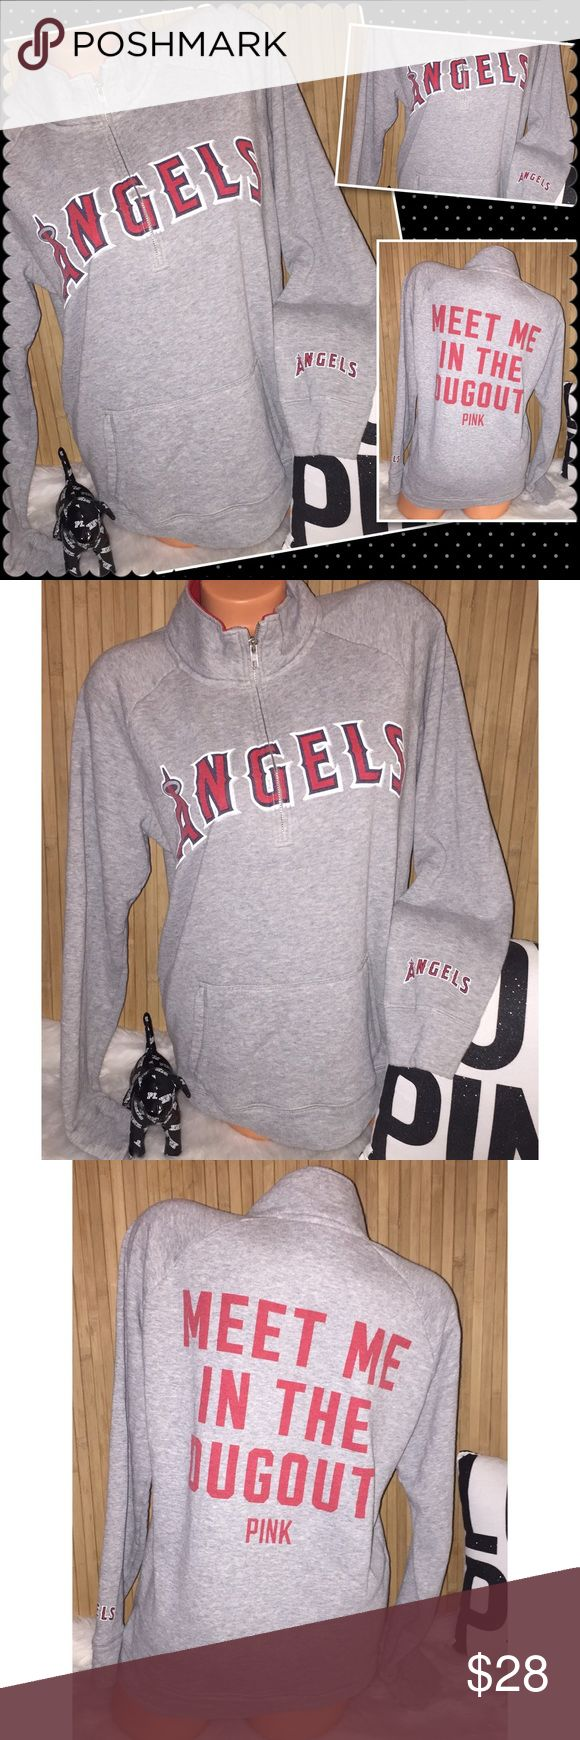 "VS PINK Angels baseball 1/4 zip crew LARGE VS Victoria's Secret PINK crew pullover 1/4 zip Anaheim Angels baseball ⚾️ team Color: gray with red-Black-White graphics, Gorgeous crew!! 22"" chest 28"" length. Sz LARGE loose fit  Pre owned in good condition no holes.  Fade/ piling from washing, Smoke/pet free. ❤️gladly Bundle. No trades. PINK Victoria's Secret Sweaters Crew & Scoop Necks"